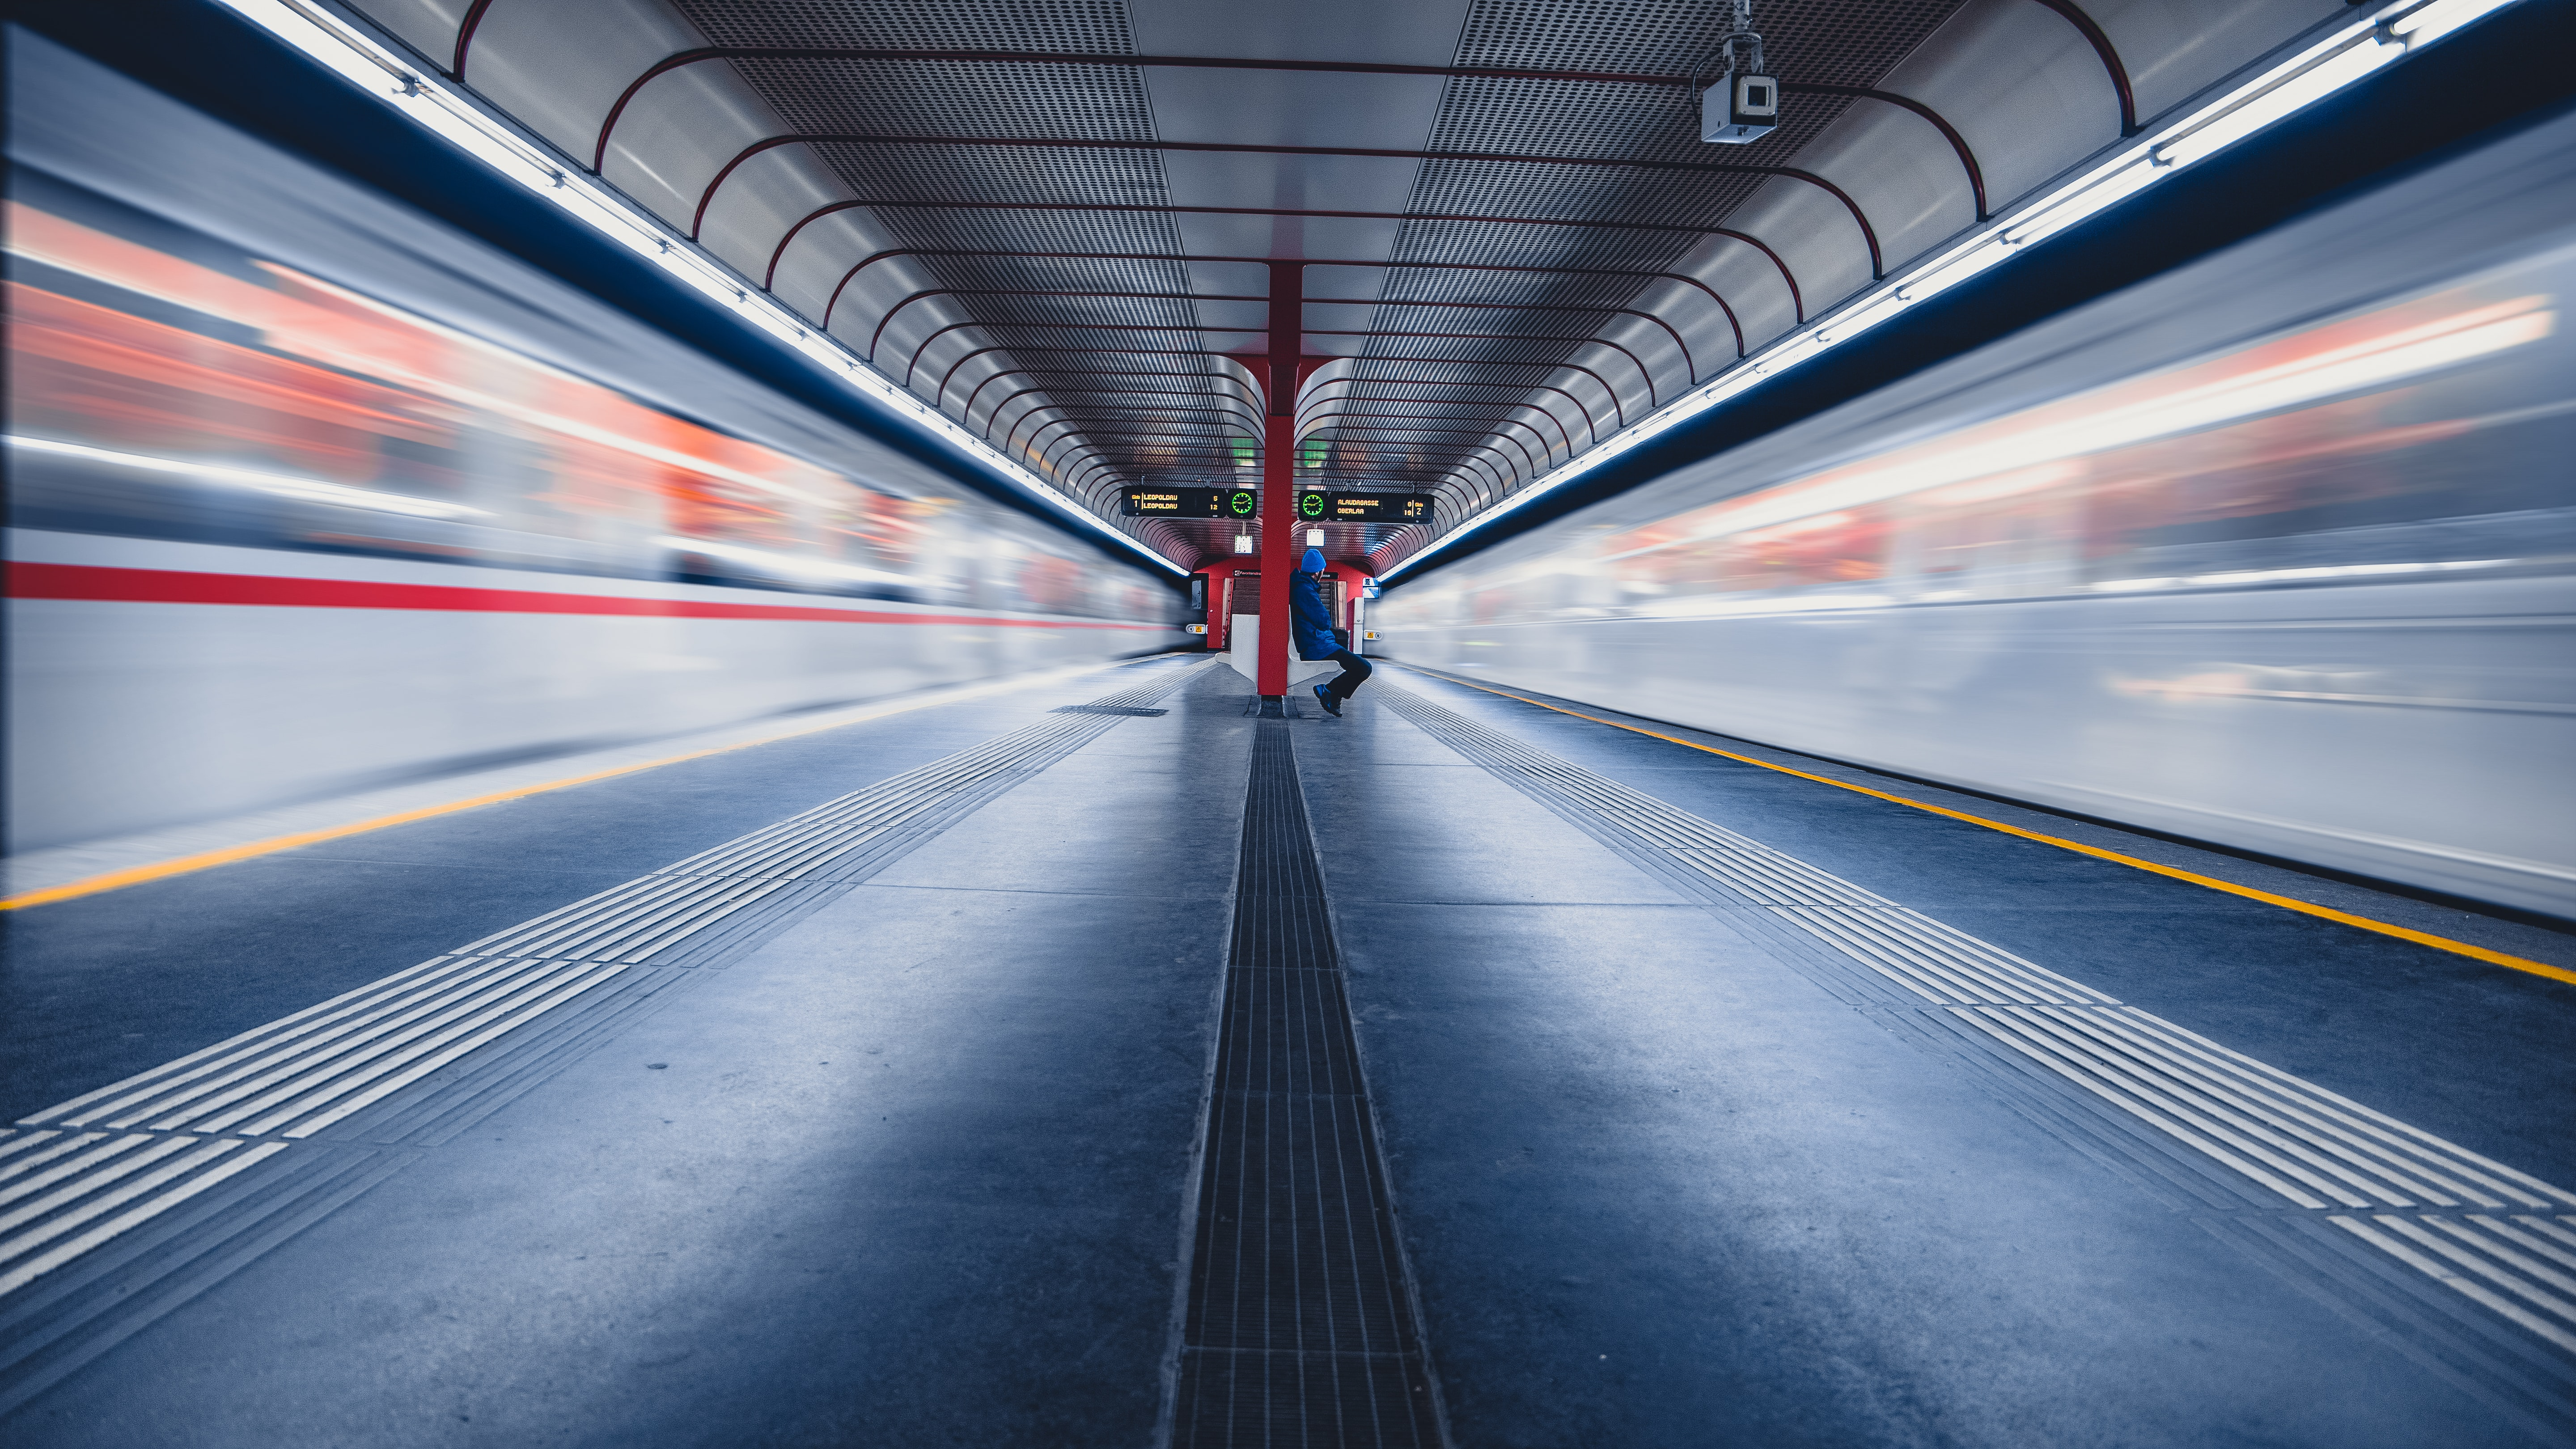 time lapse photography of trains in train station